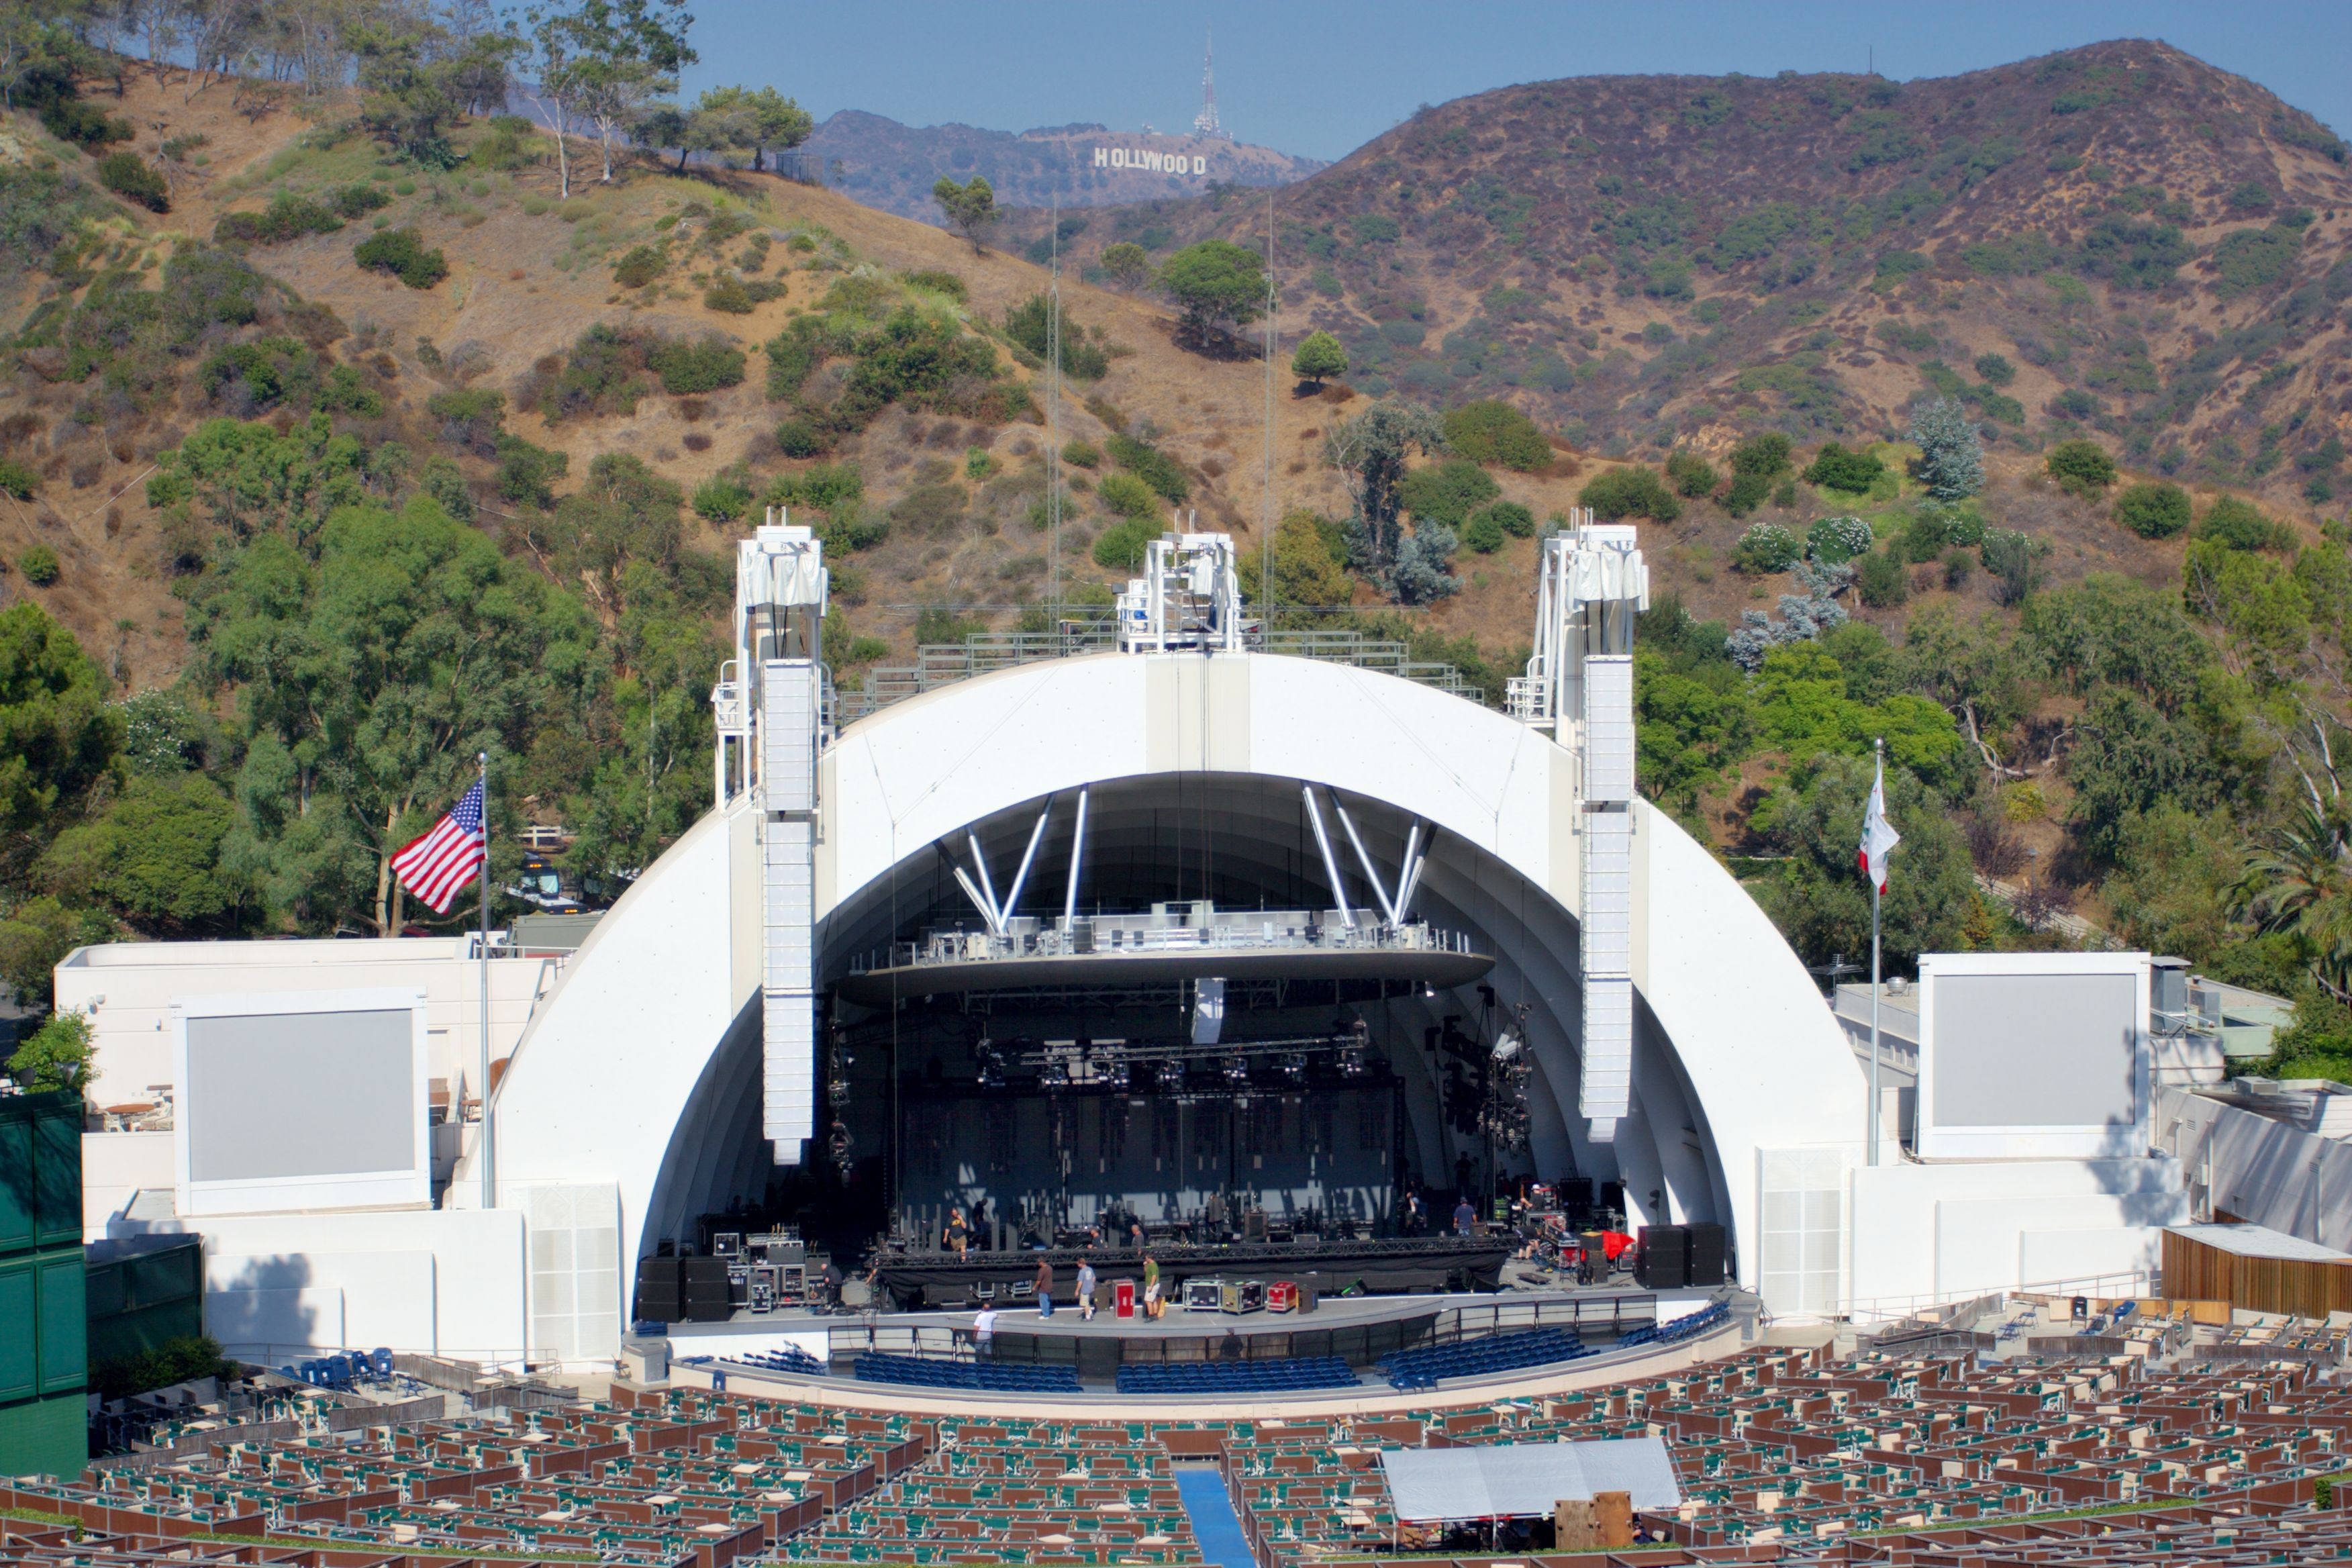 Hollywood Bowl with a mountain in the background